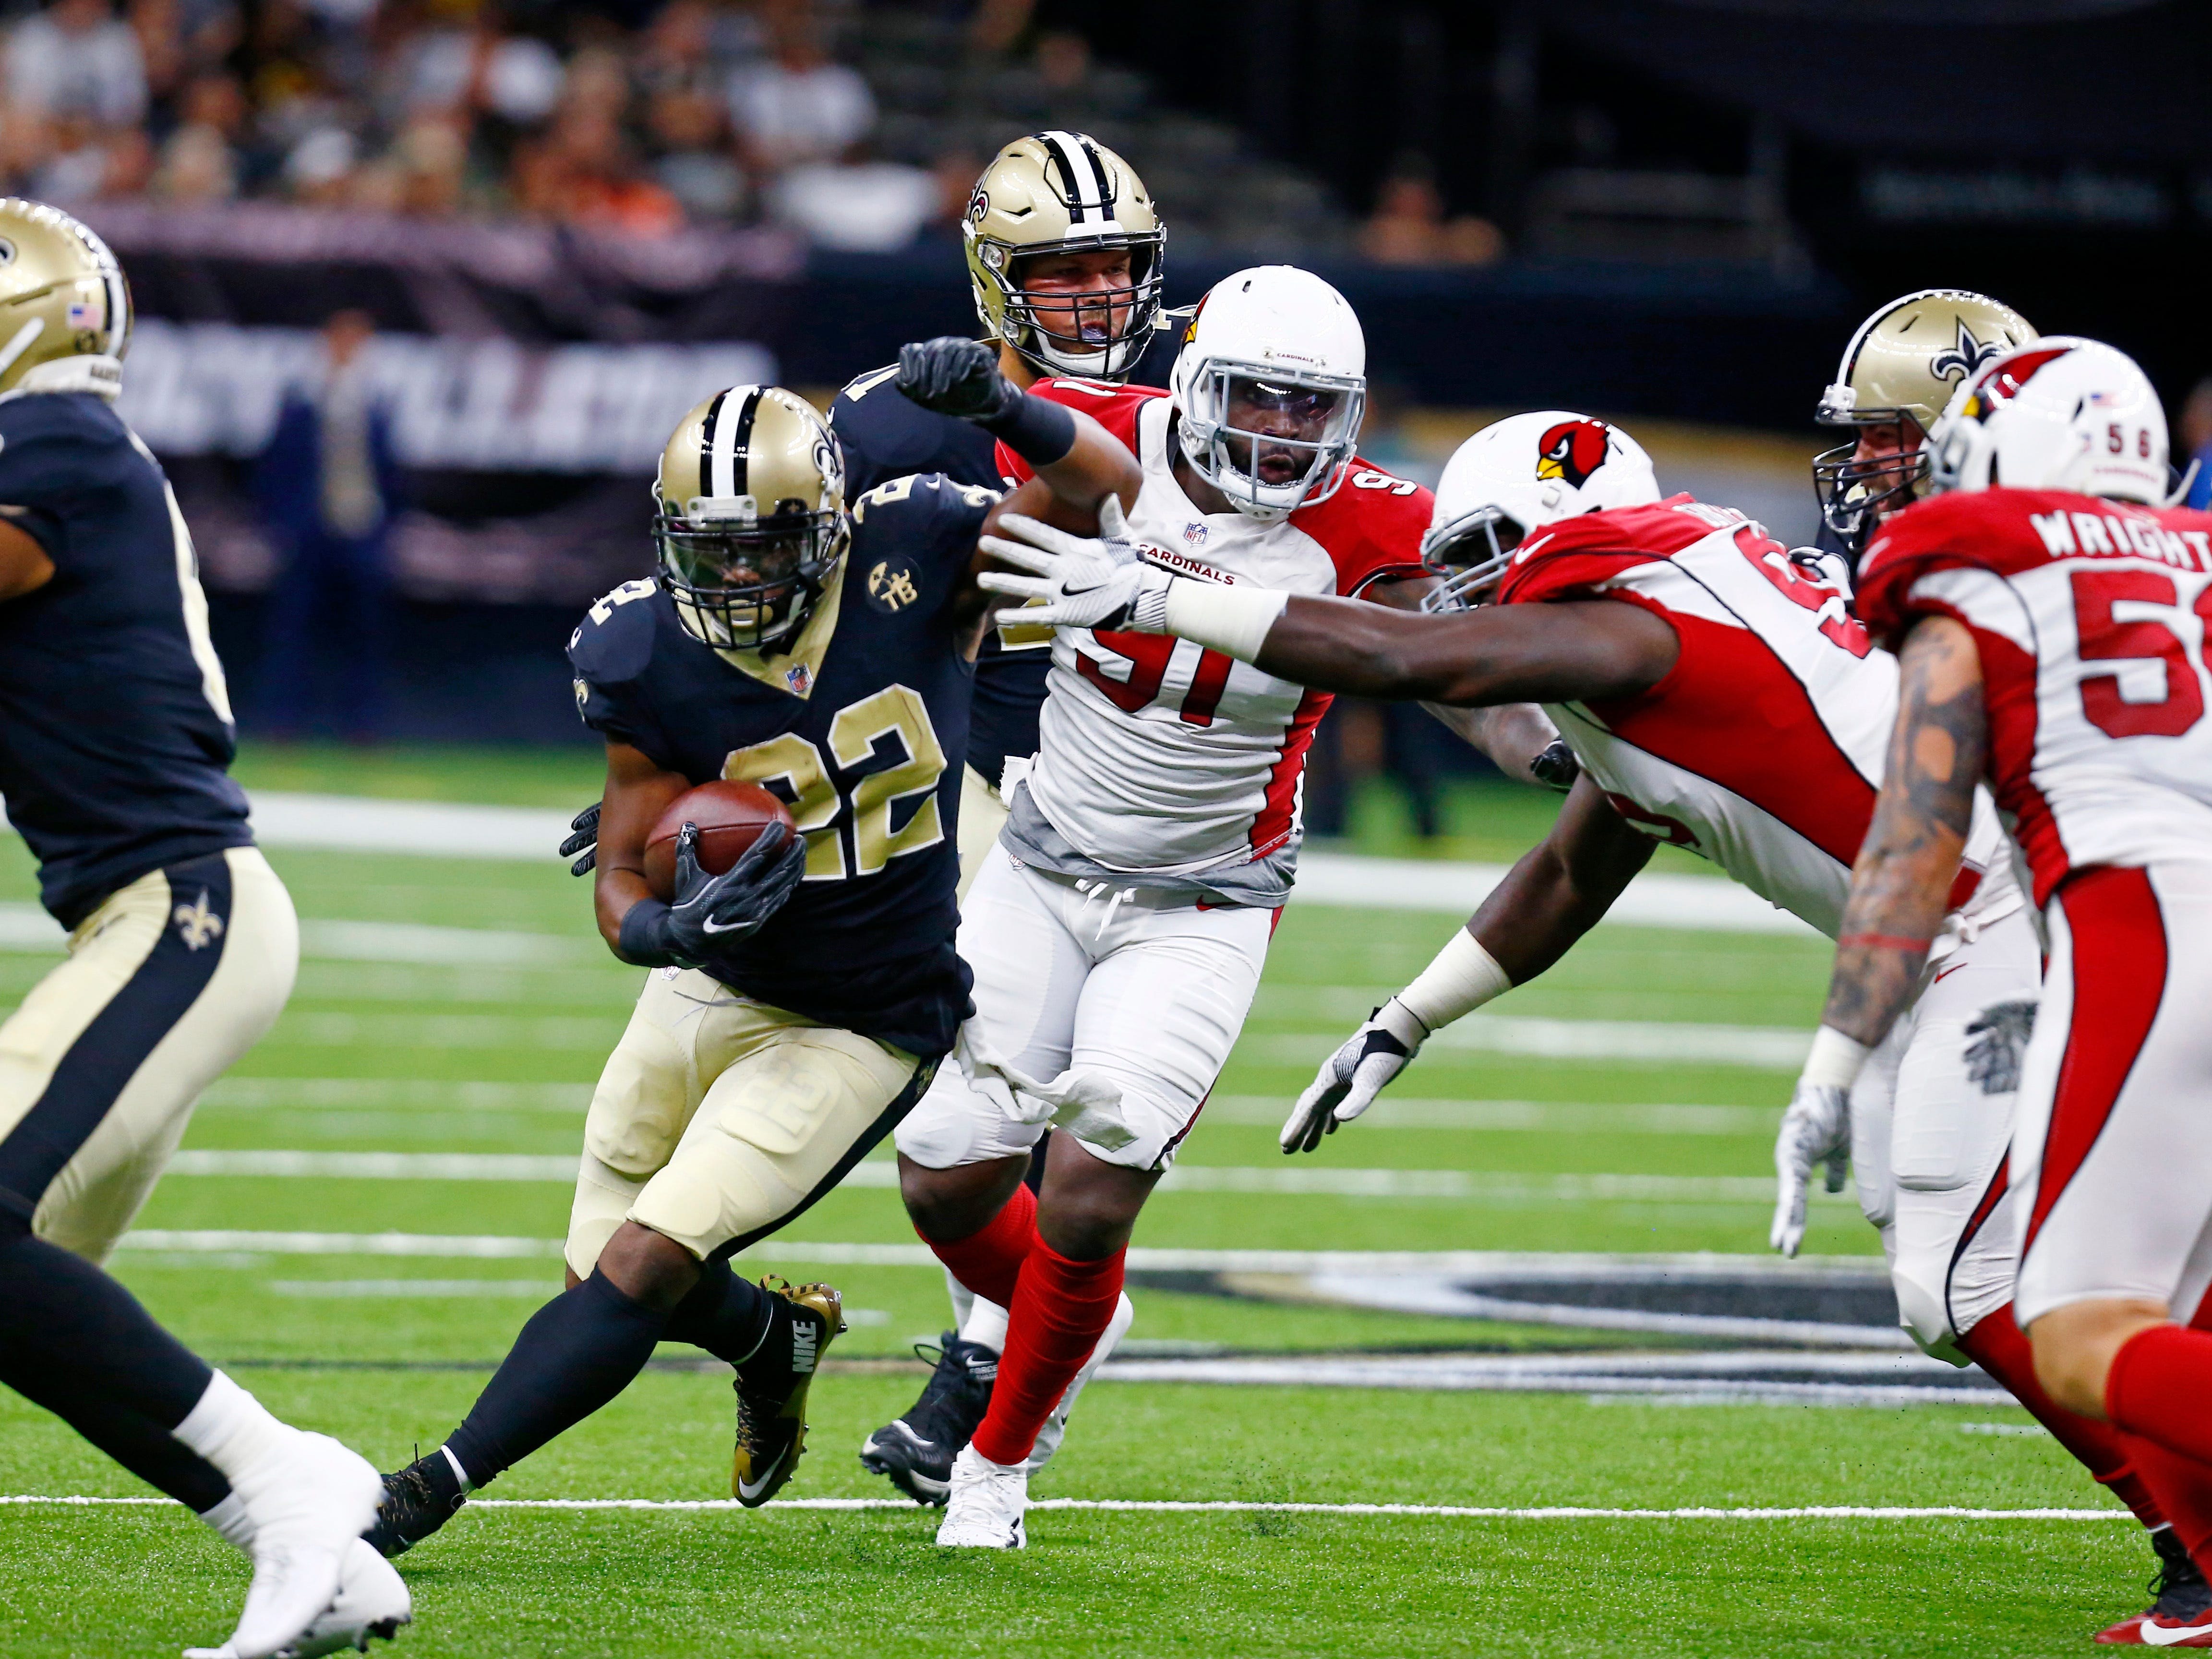 New Orleans Saints running back Mark Ingram (22) carries past Arizona Cardinals defensive end Benson Mayowa (91) in the first half of an NFL preseason football game in New Orleans, Friday, Aug. 17, 2018.